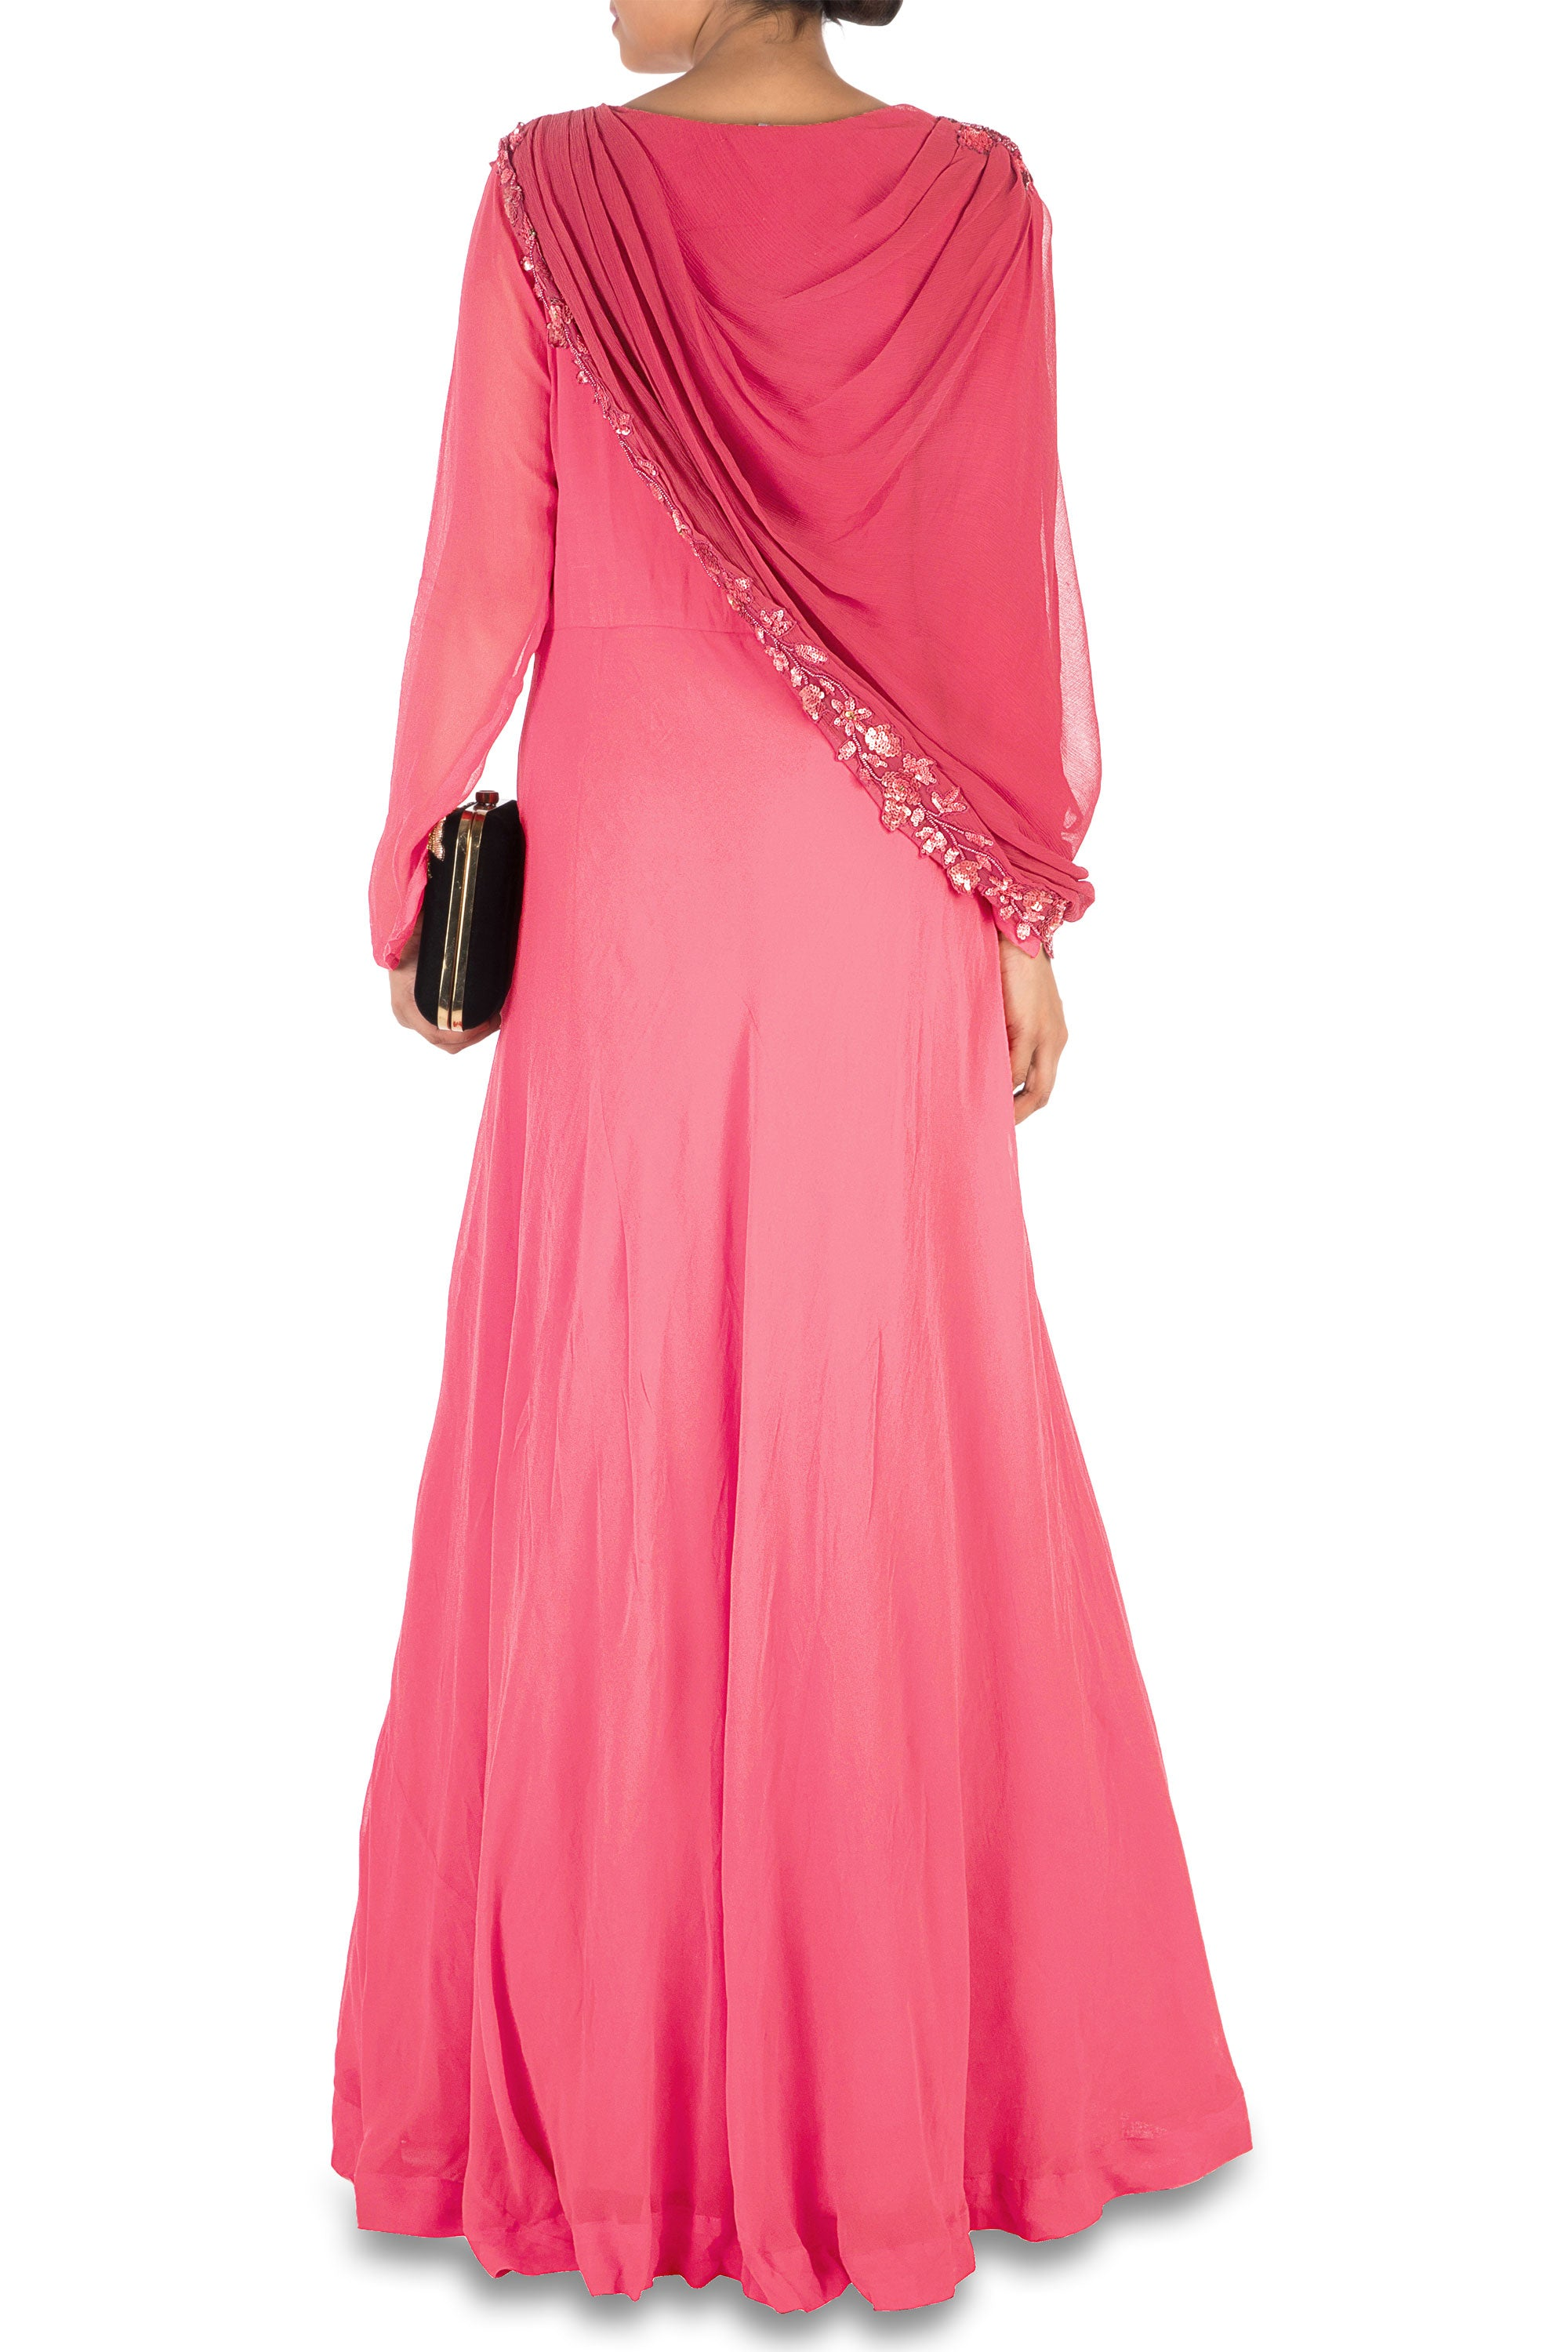 Hand Embroidered Sweet Pink Gown With Attached Dupatta Back